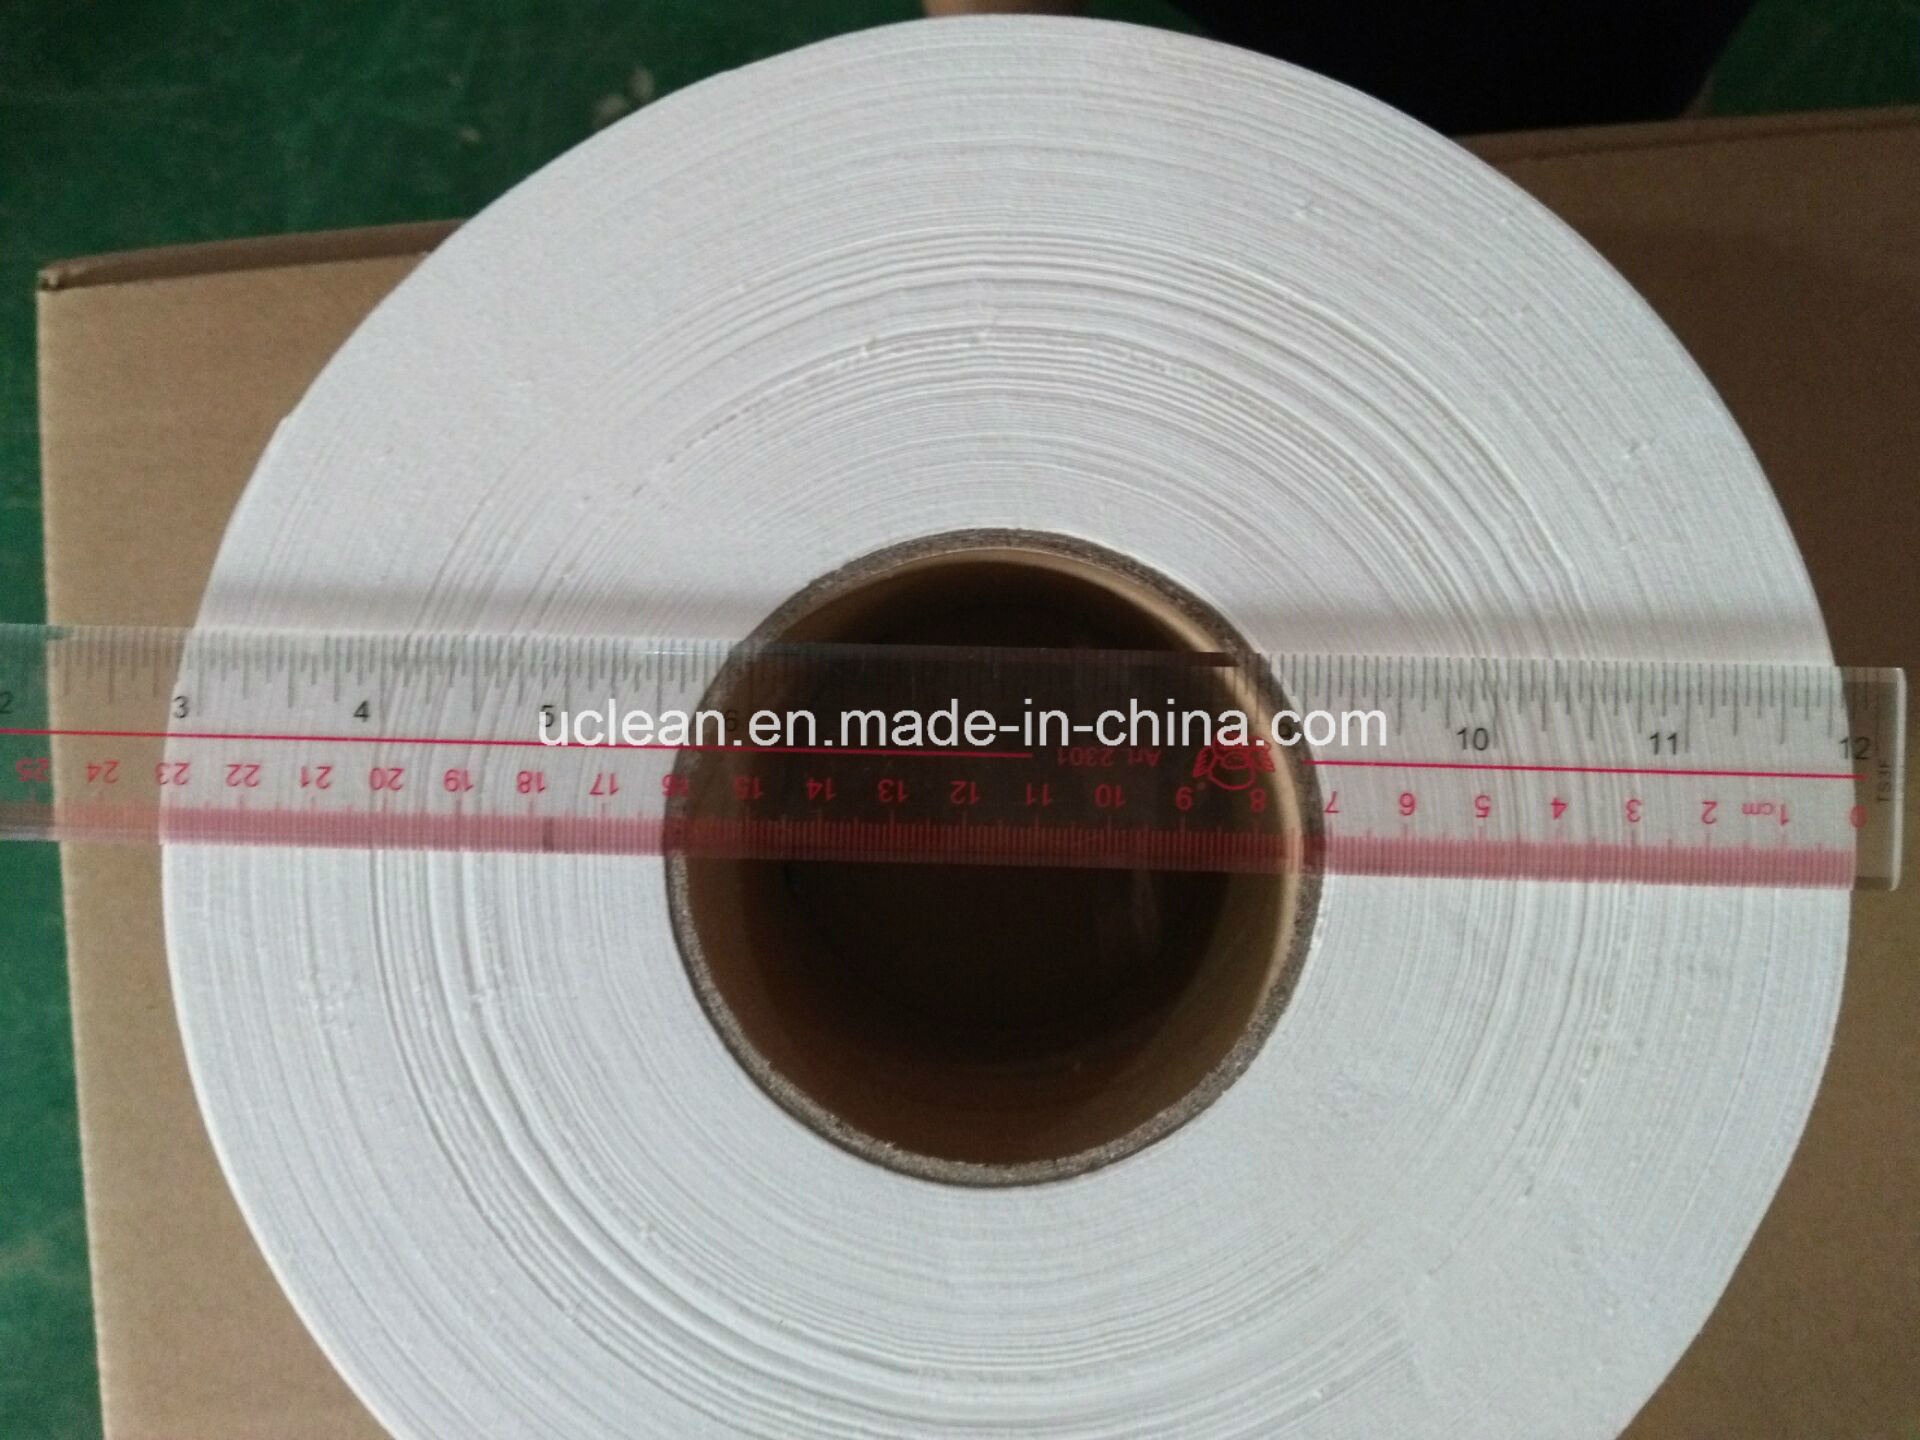 J1-500r 1ply Recycle Jumbo Roll Toilet Tissue